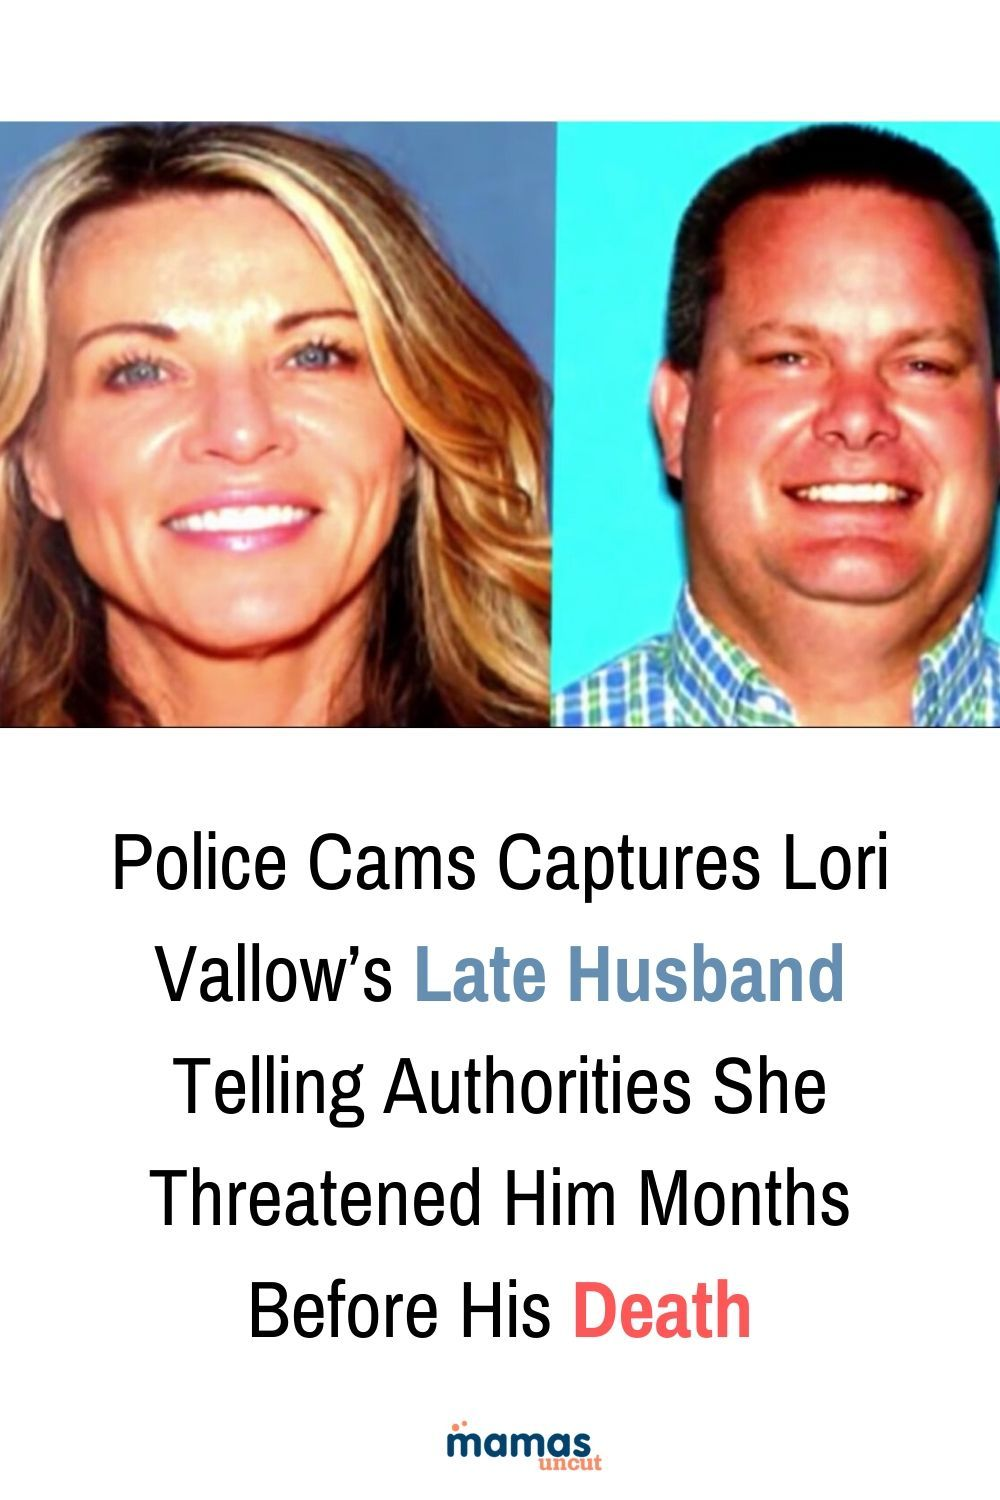 Police Cams Show Lori Vallow's Late Husband Telling Authorities She Threatened Him  In the video, Charles Vallow can be heard telling police that he believes Lisa has